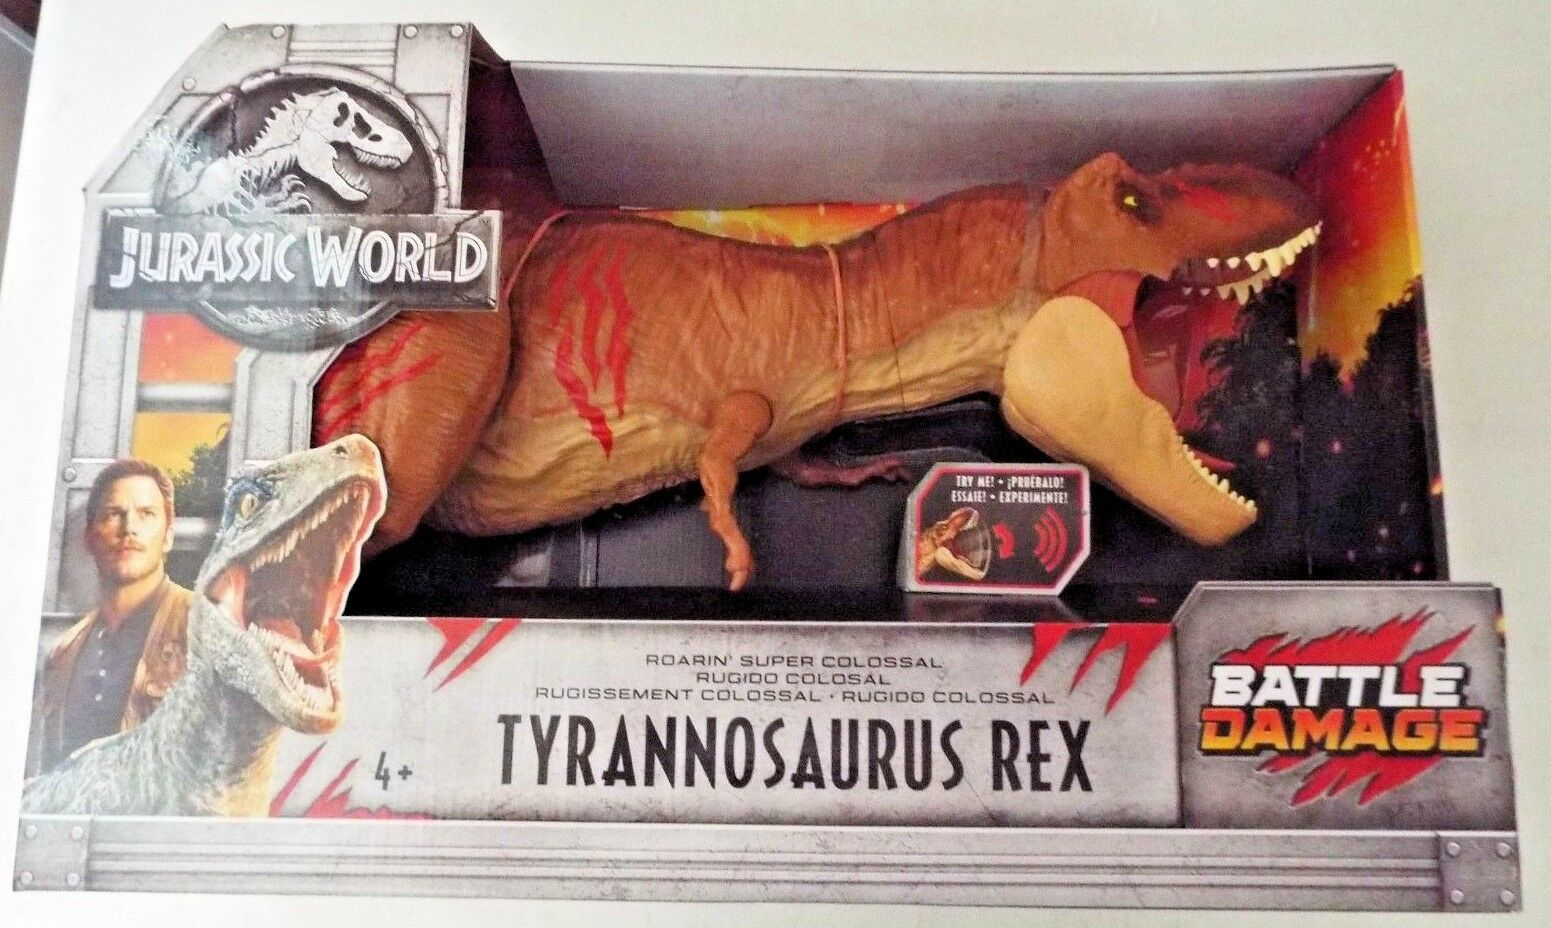 Jurassic World Roarin' Super Colossal Tyrannosaurus T Rex Battle Damage Mattel